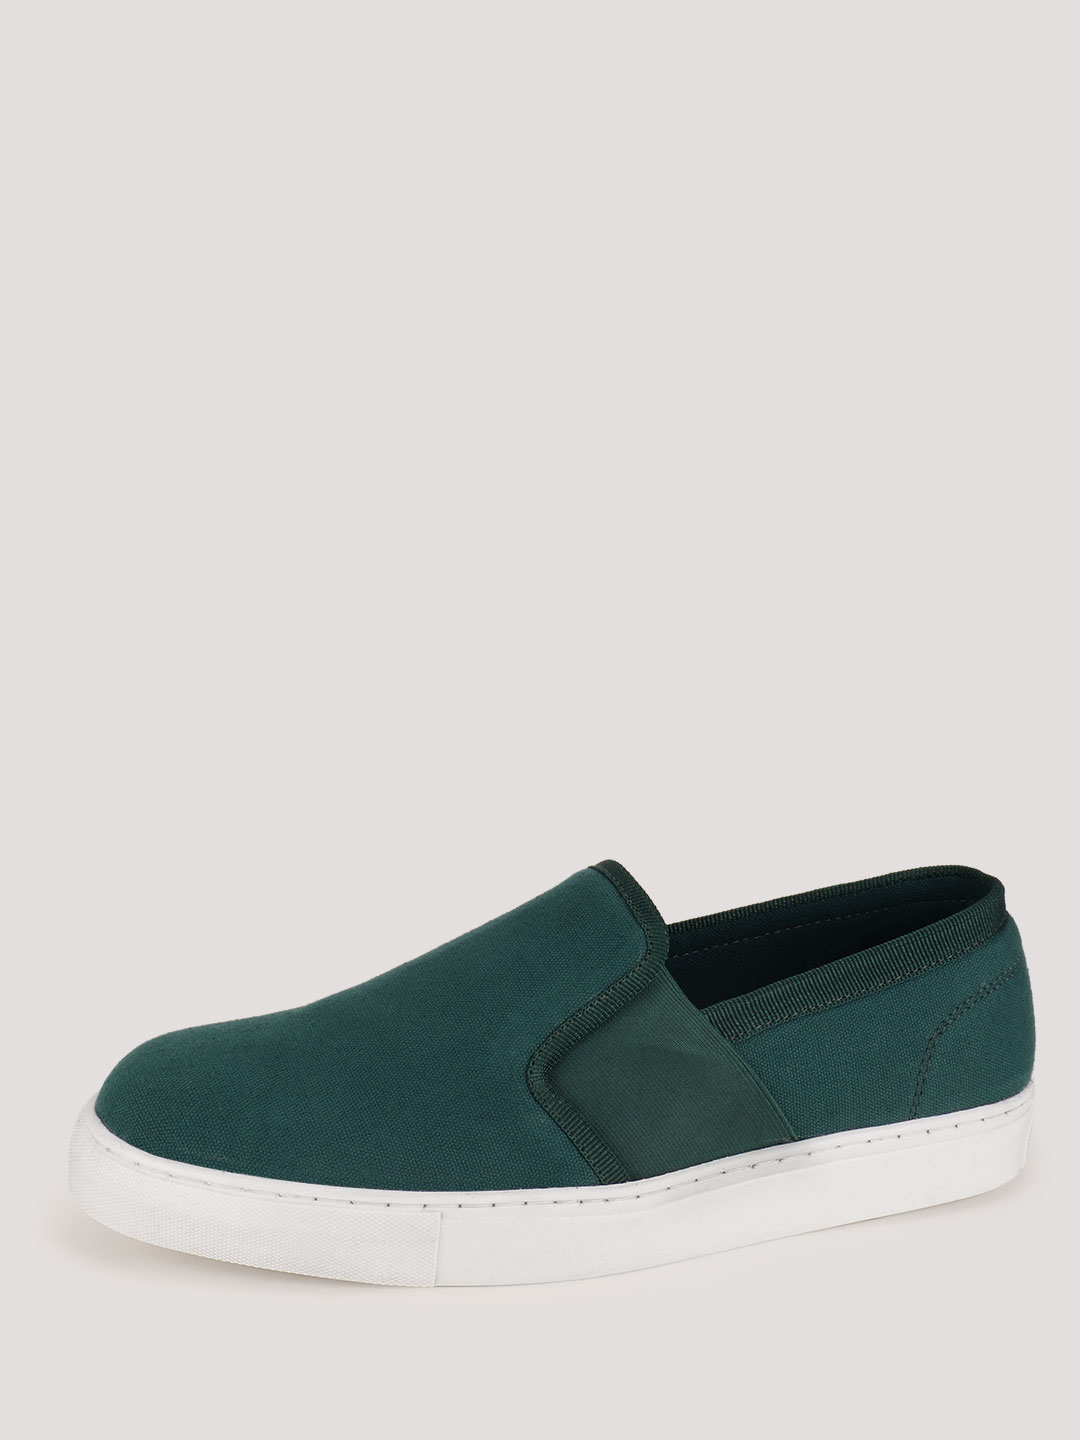 KOOVS Green Elasticated Side Slip-On Shoes 1